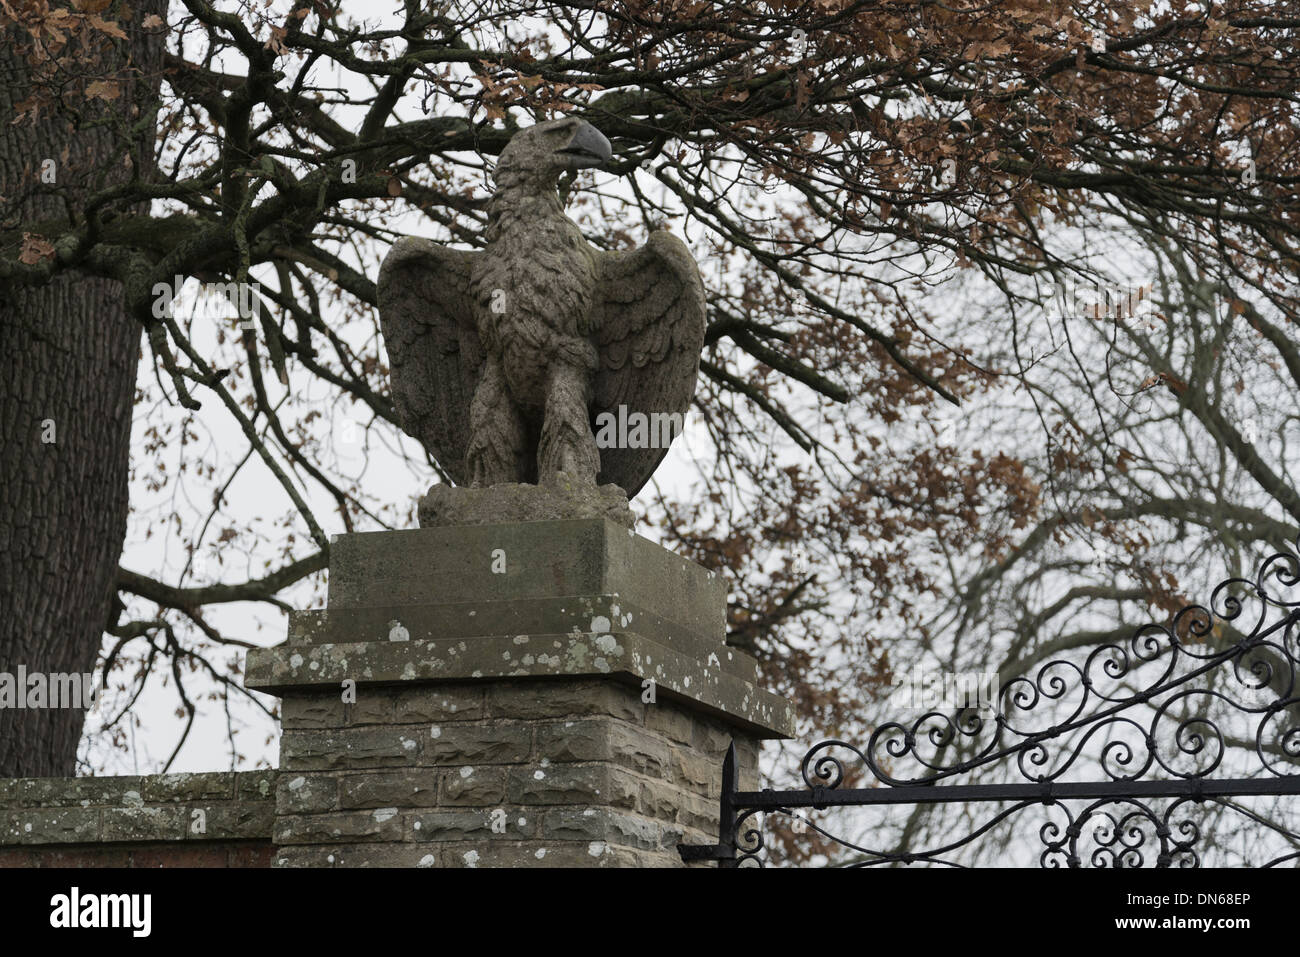 Eagle statues atop of entrance gate posts to country houses Stock Photo